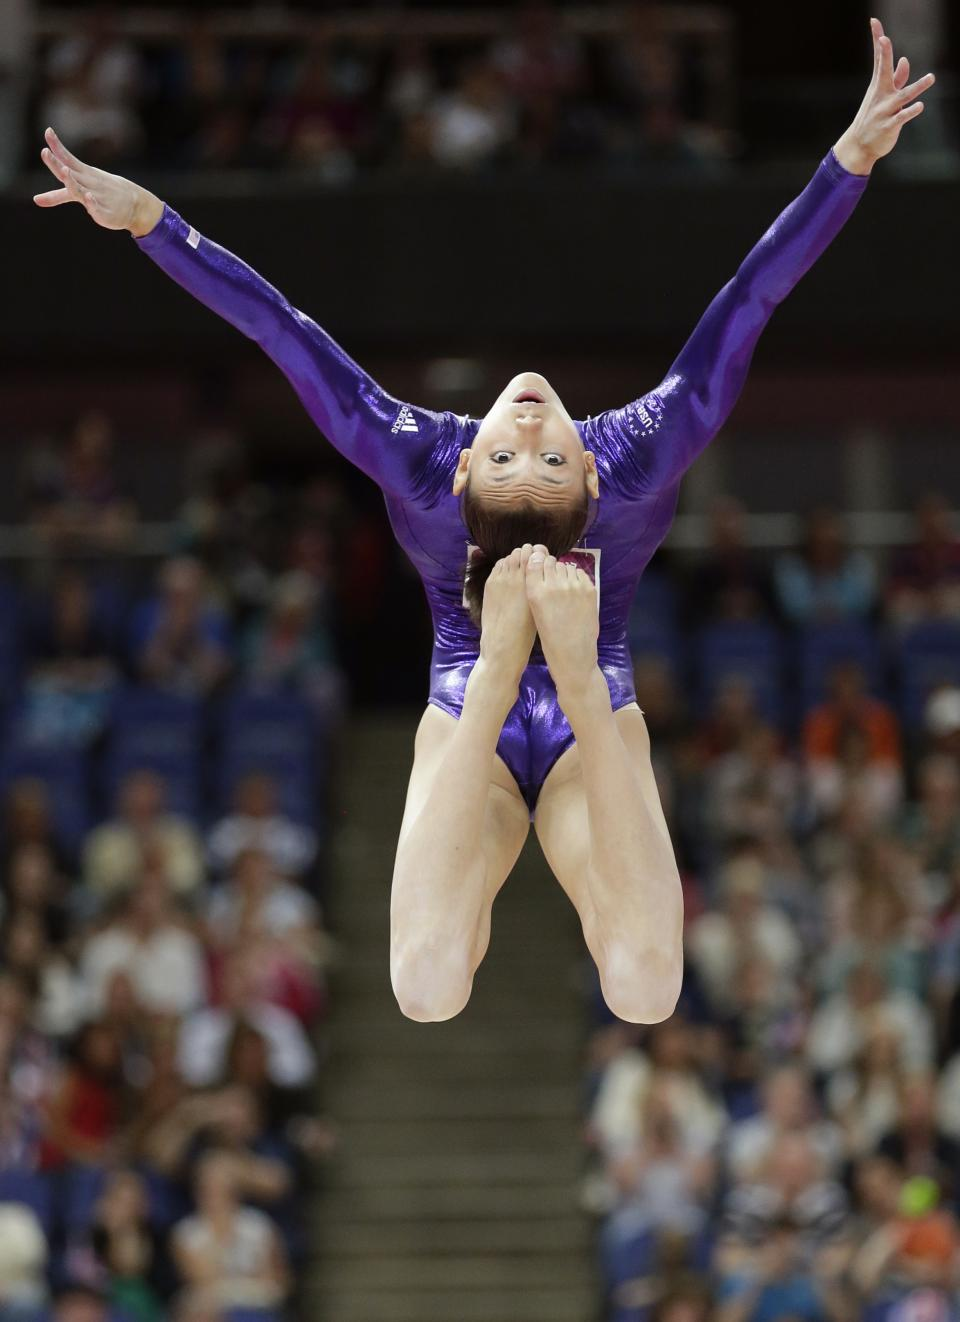 U.S. gymnast Kyla Ross performs on the balance beam during the Artistic Gymnastics women's qualification at the 2012 Summer Olympics, Sunday, July 29, 2012, in London. (AP Photo/Gregory Bull)